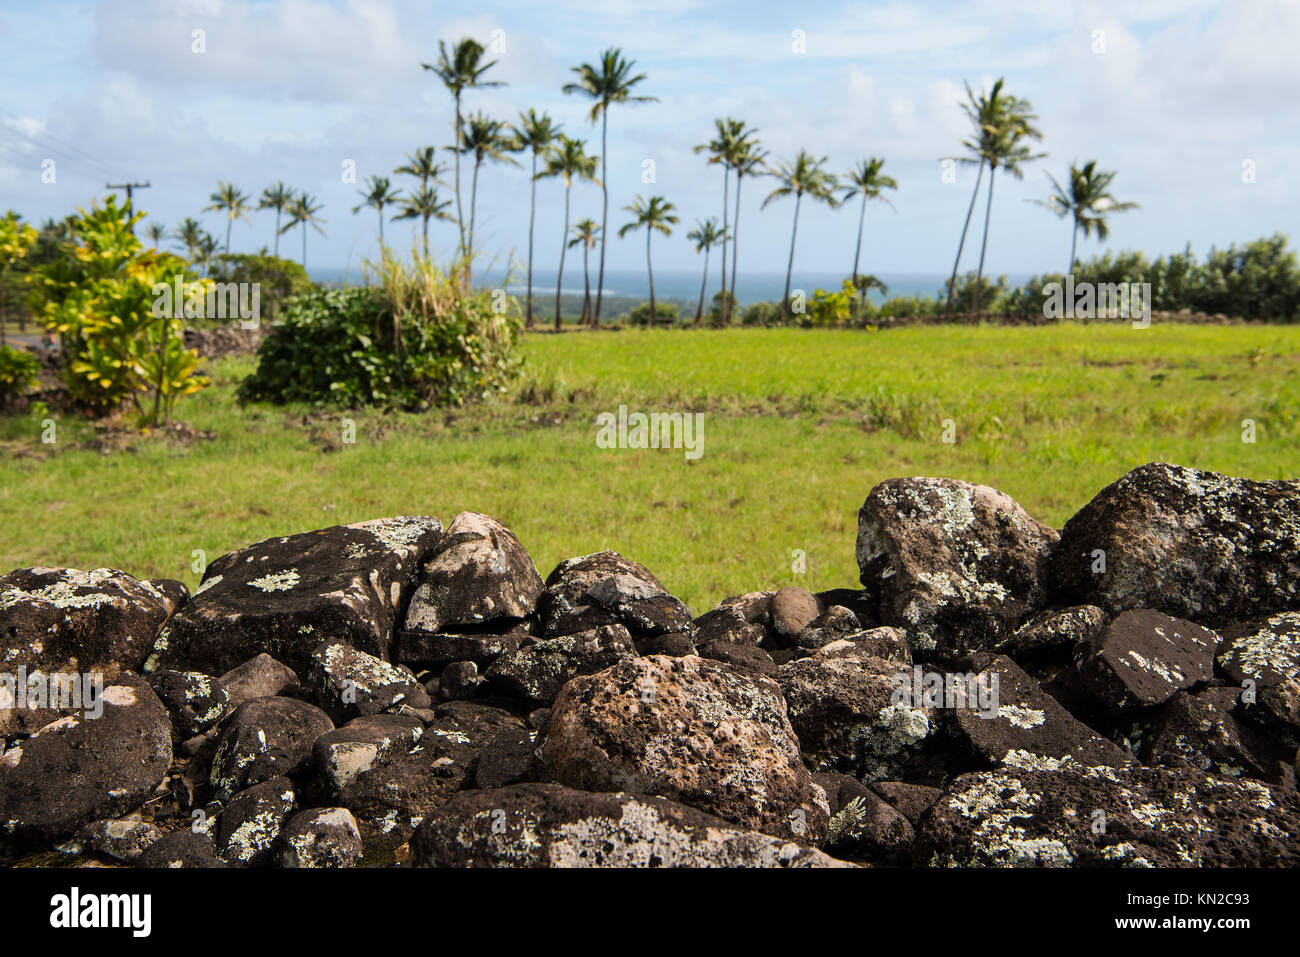 Poliahu Heiau on Kauai island, Hawaii, a highly important ritual place of the old Hawaiian culture. - Stock Image